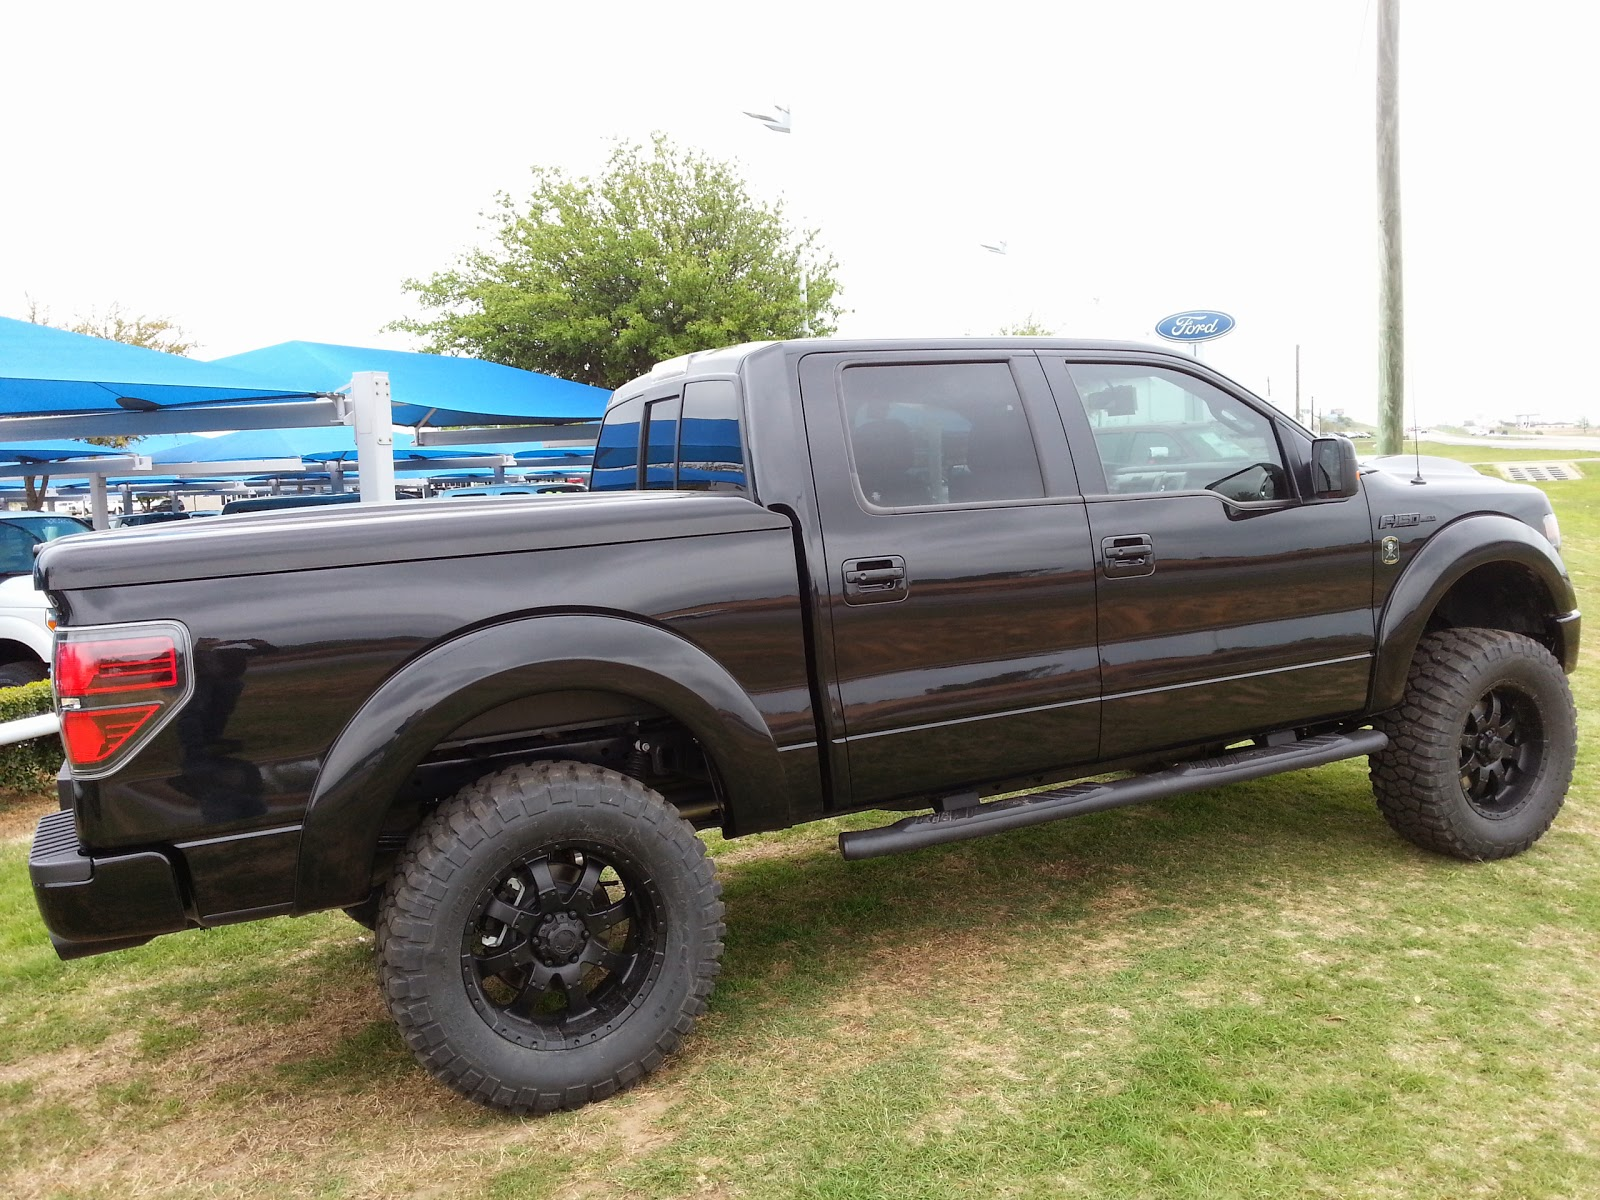 Tricked out new 2014 ford black ops edition 4x4 truck call troy young 817 243 9840